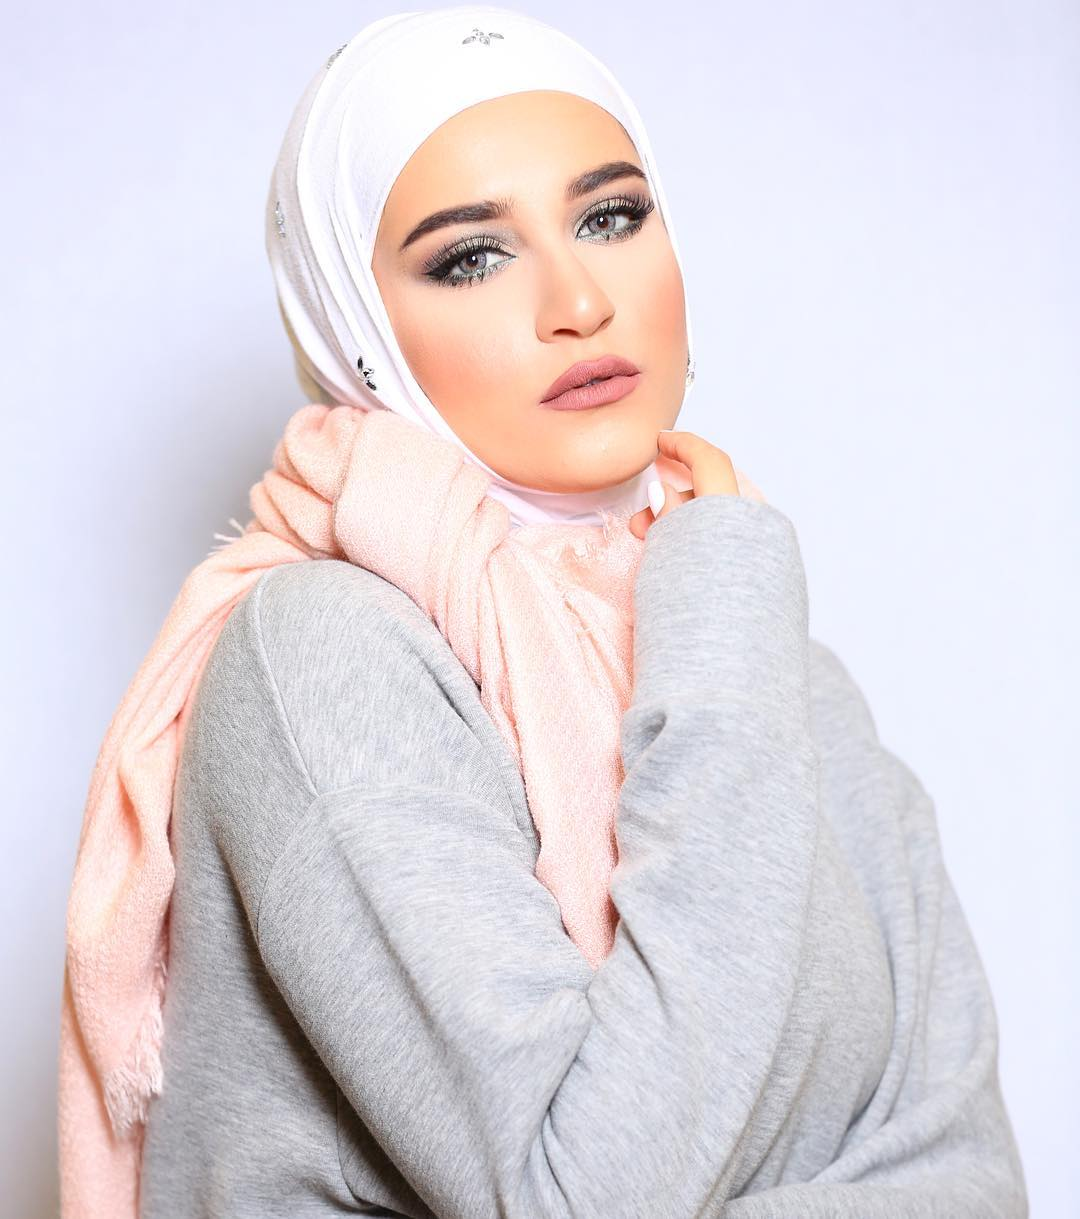 unbelievably_beautiful_women_wearing_hijabs_on_ig_11